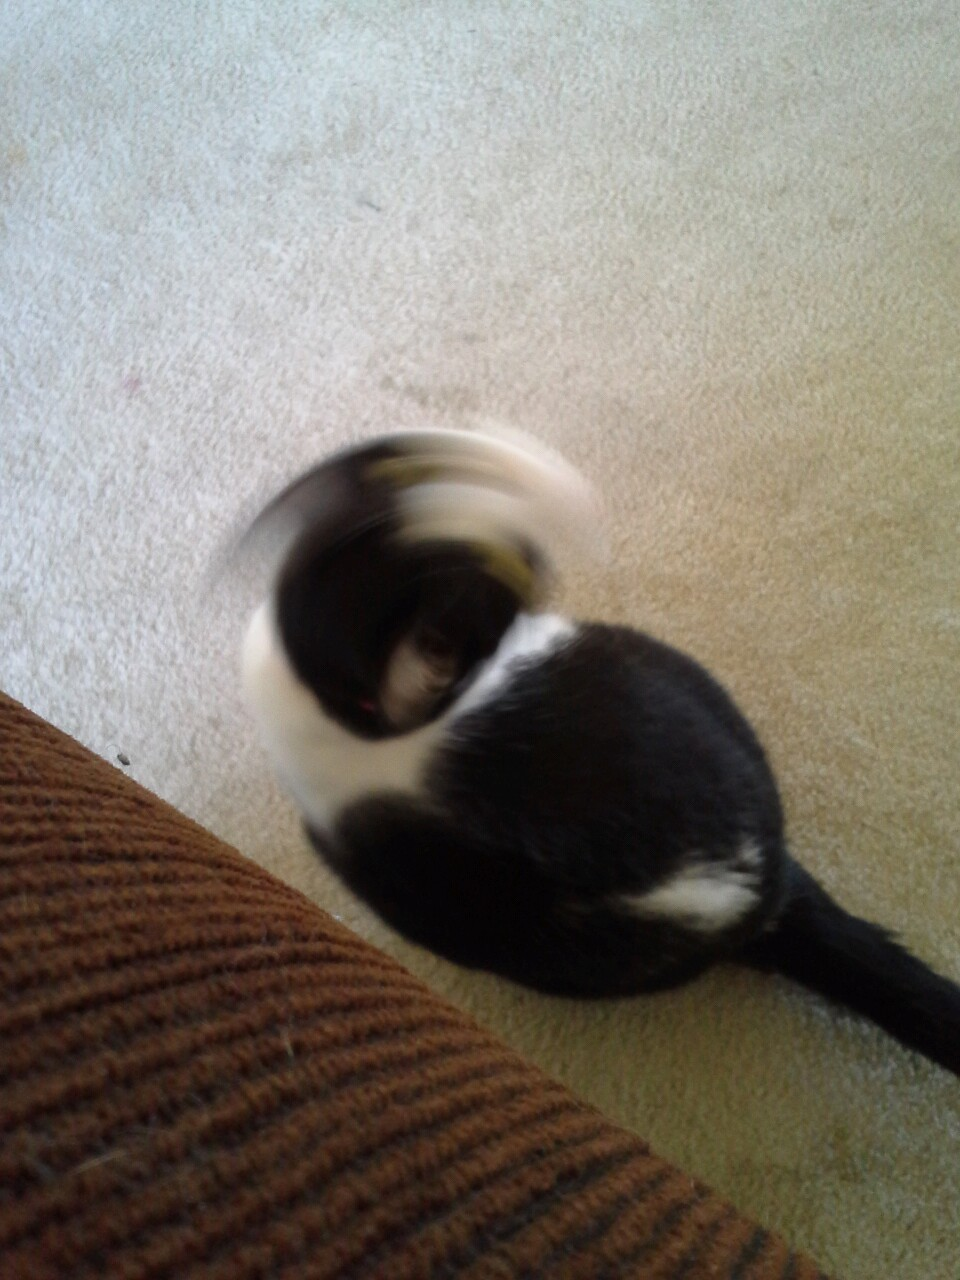 I tried to take a picture of the cat